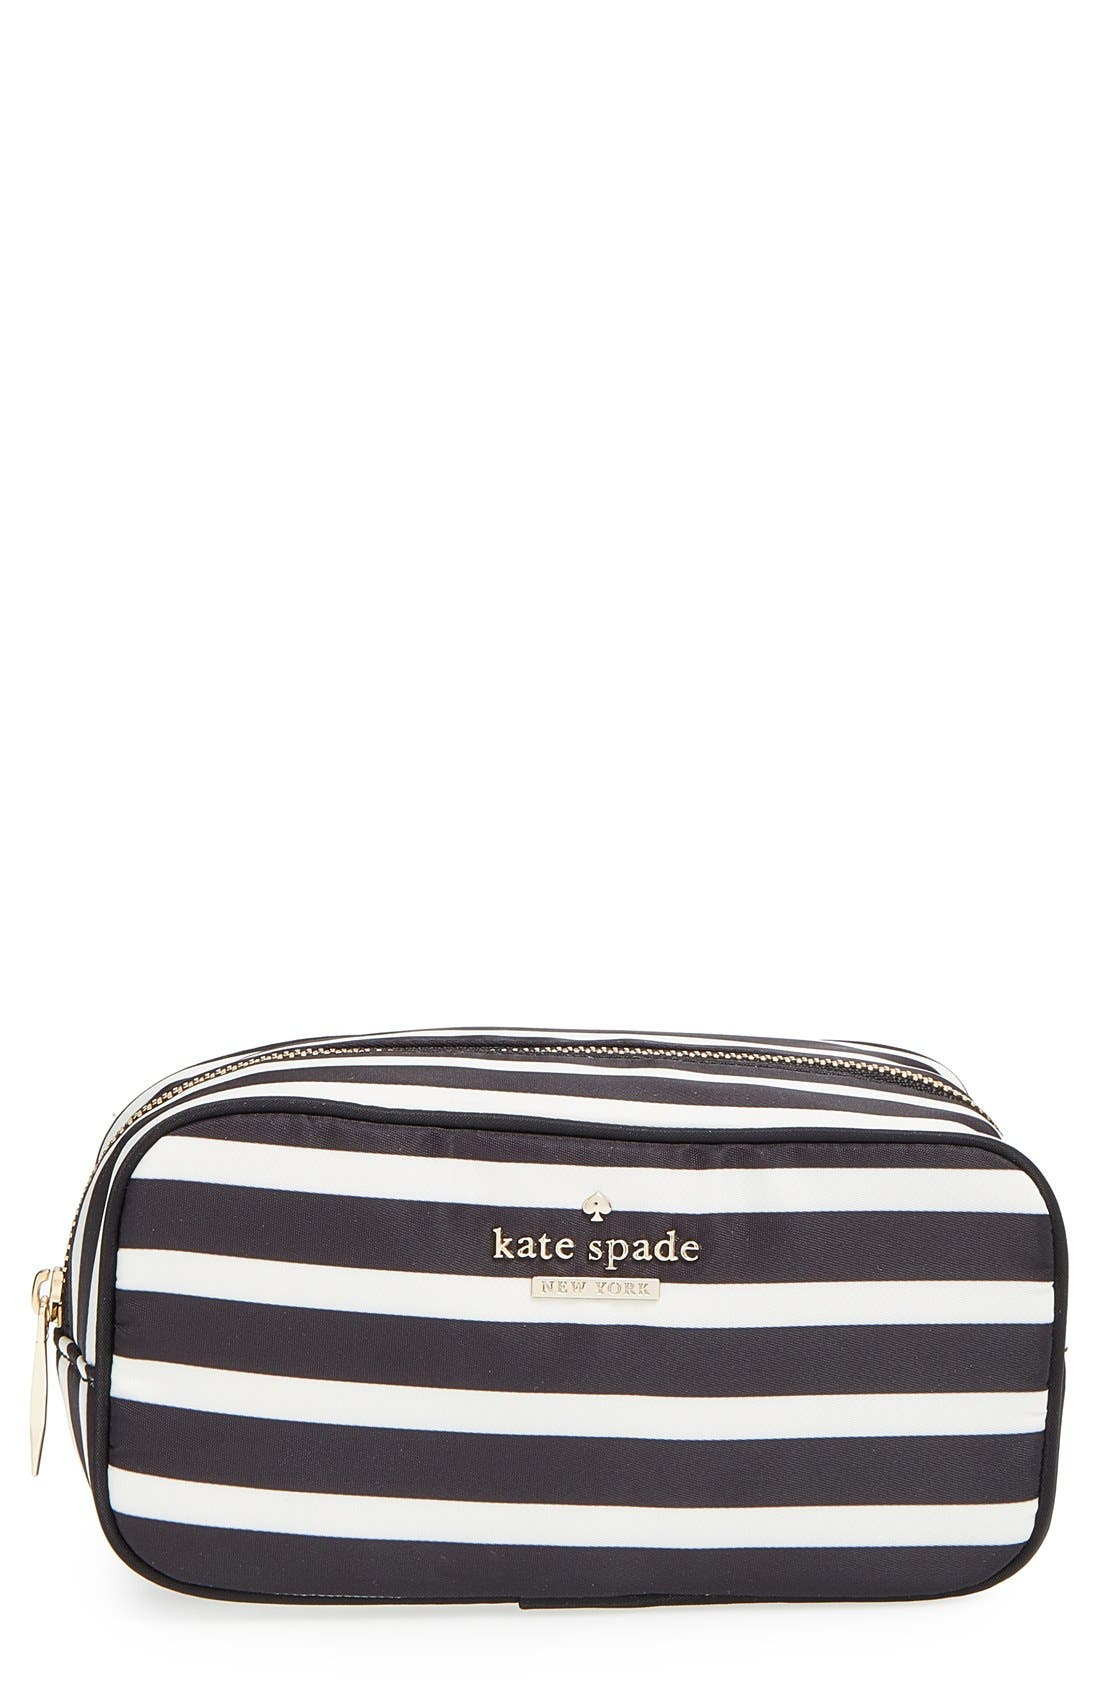 Alternate Image 1 Selected - kate spade new york 'classic - ezra' cosmetics case